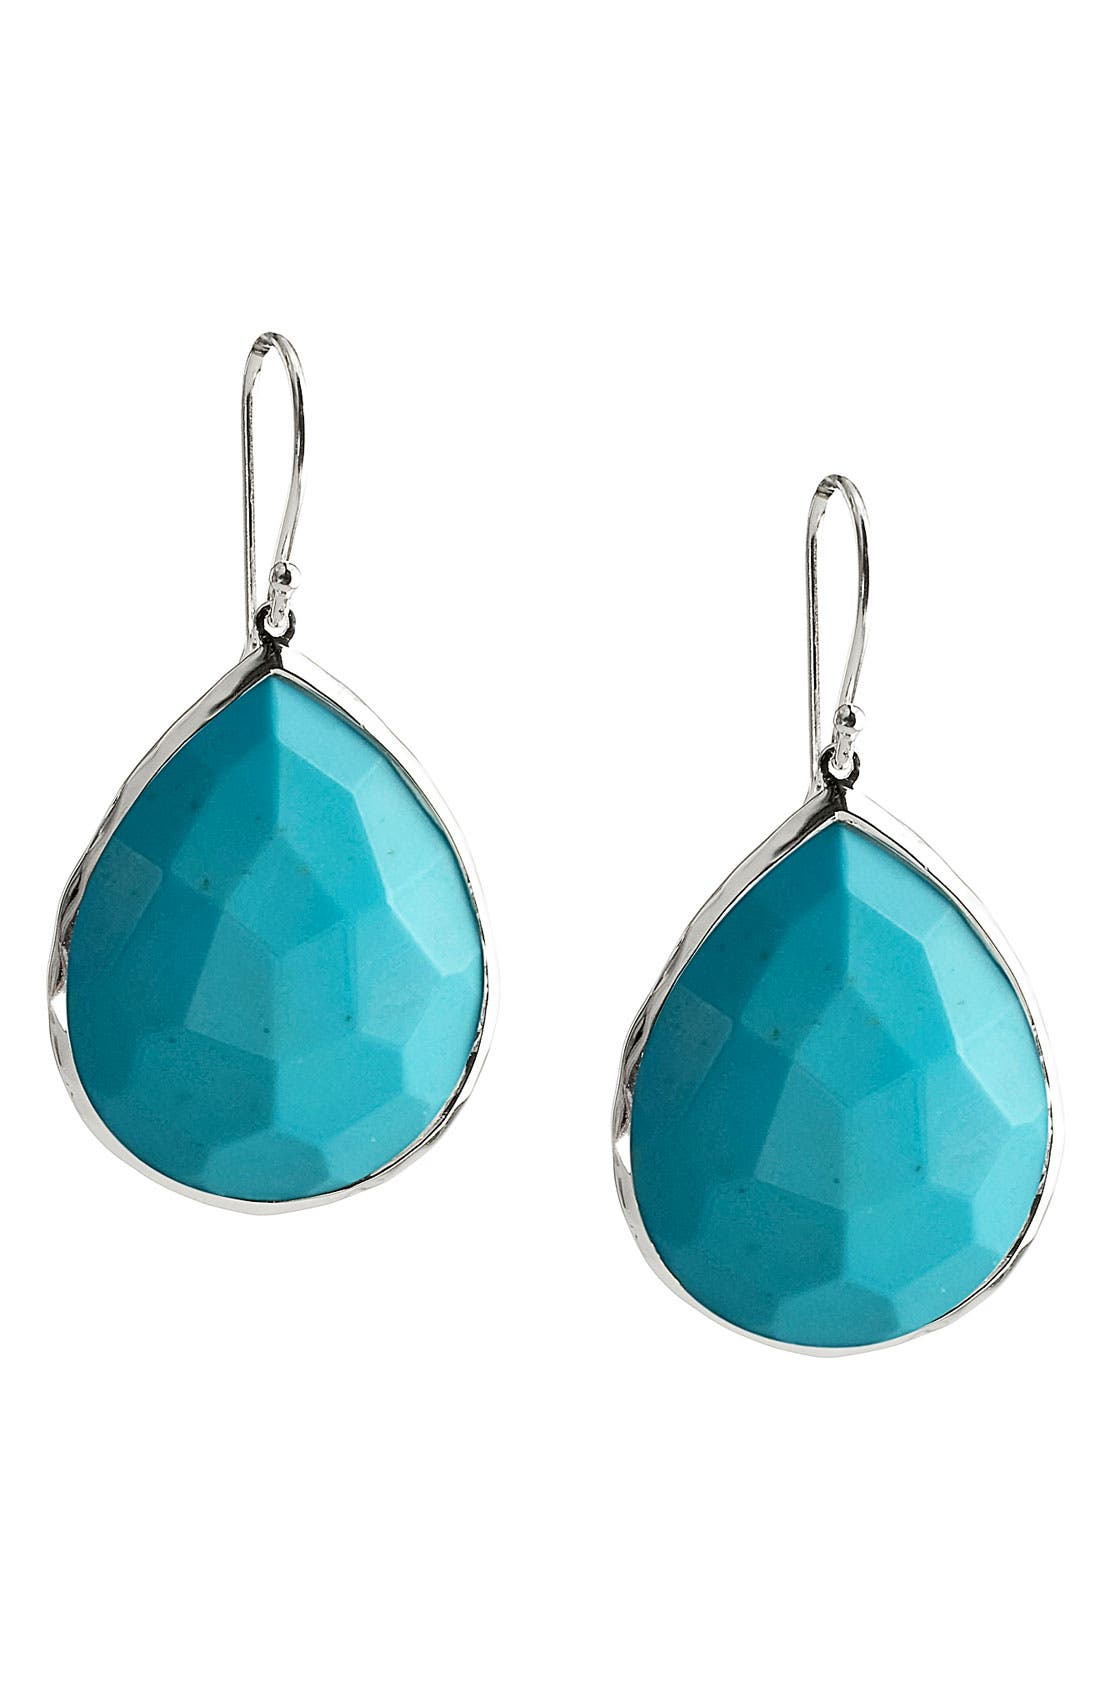 Alternate Image 1 Selected - Ippolita 'Rock Candy' Semiprecious Teardrop Earrings